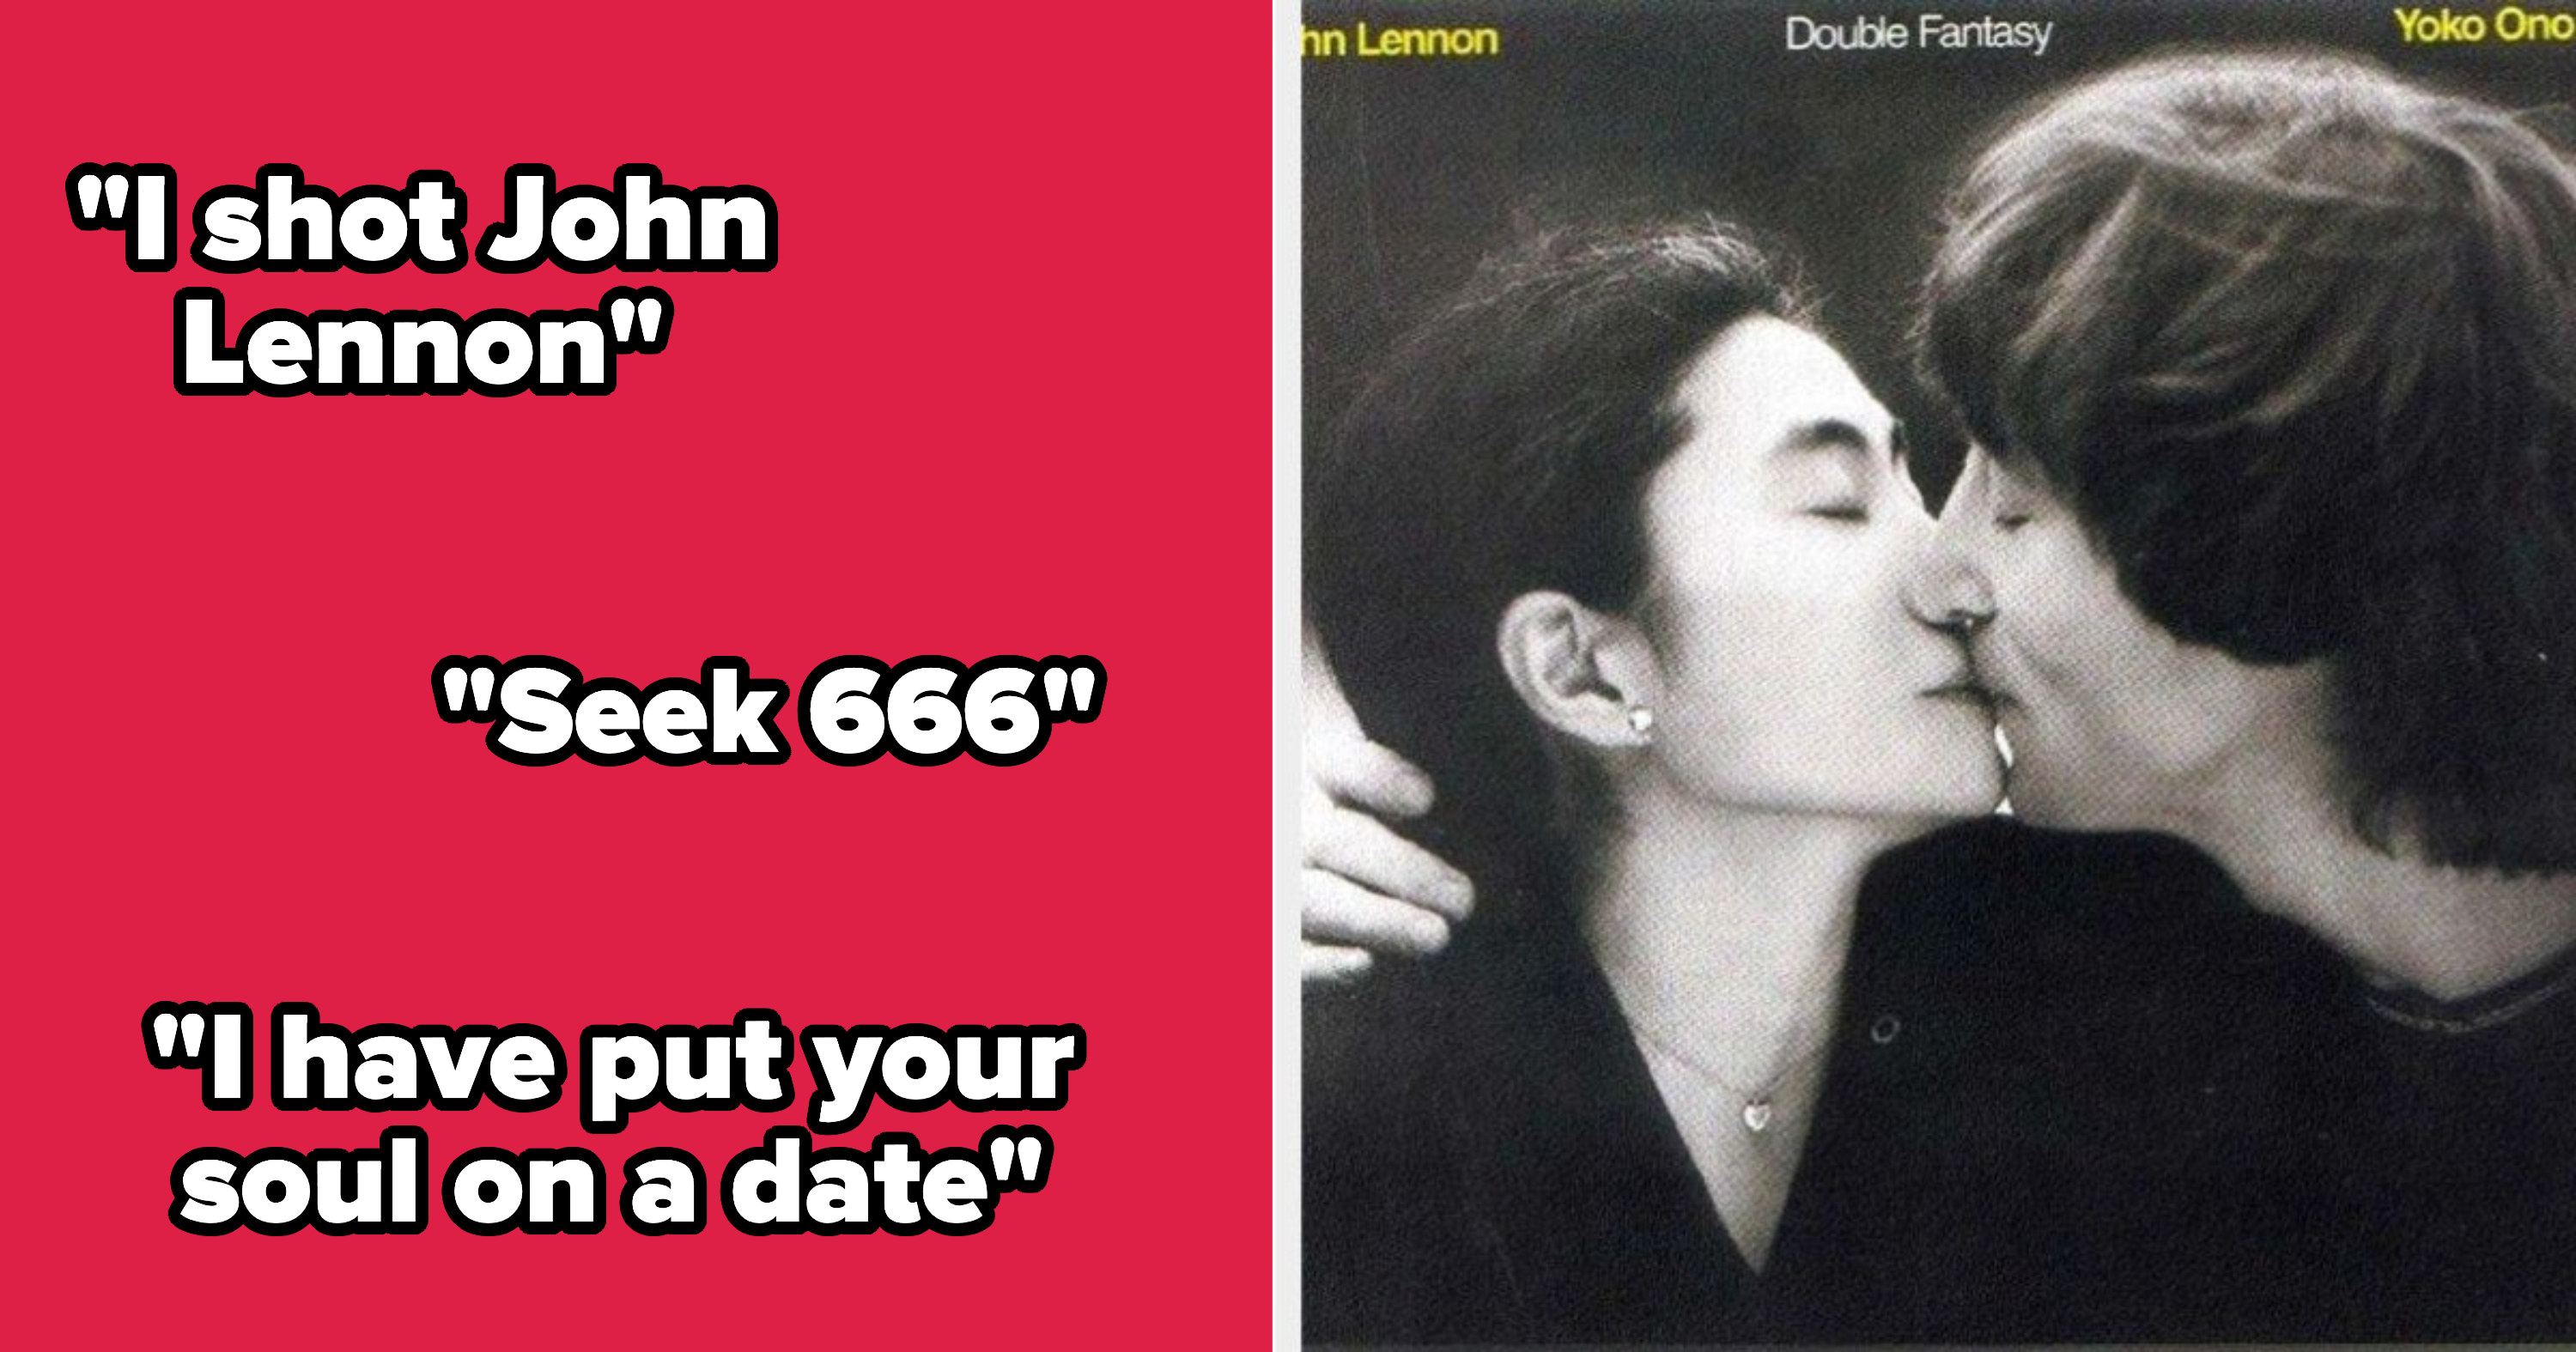 """Conspiracy theory lyrics that read, """"I shot John Lennon,"""" """"Seek 666,"""" and """"I have put your soul on a date""""; John Lennon and Yoko Ono's album cover for """"Double Fantasy"""""""